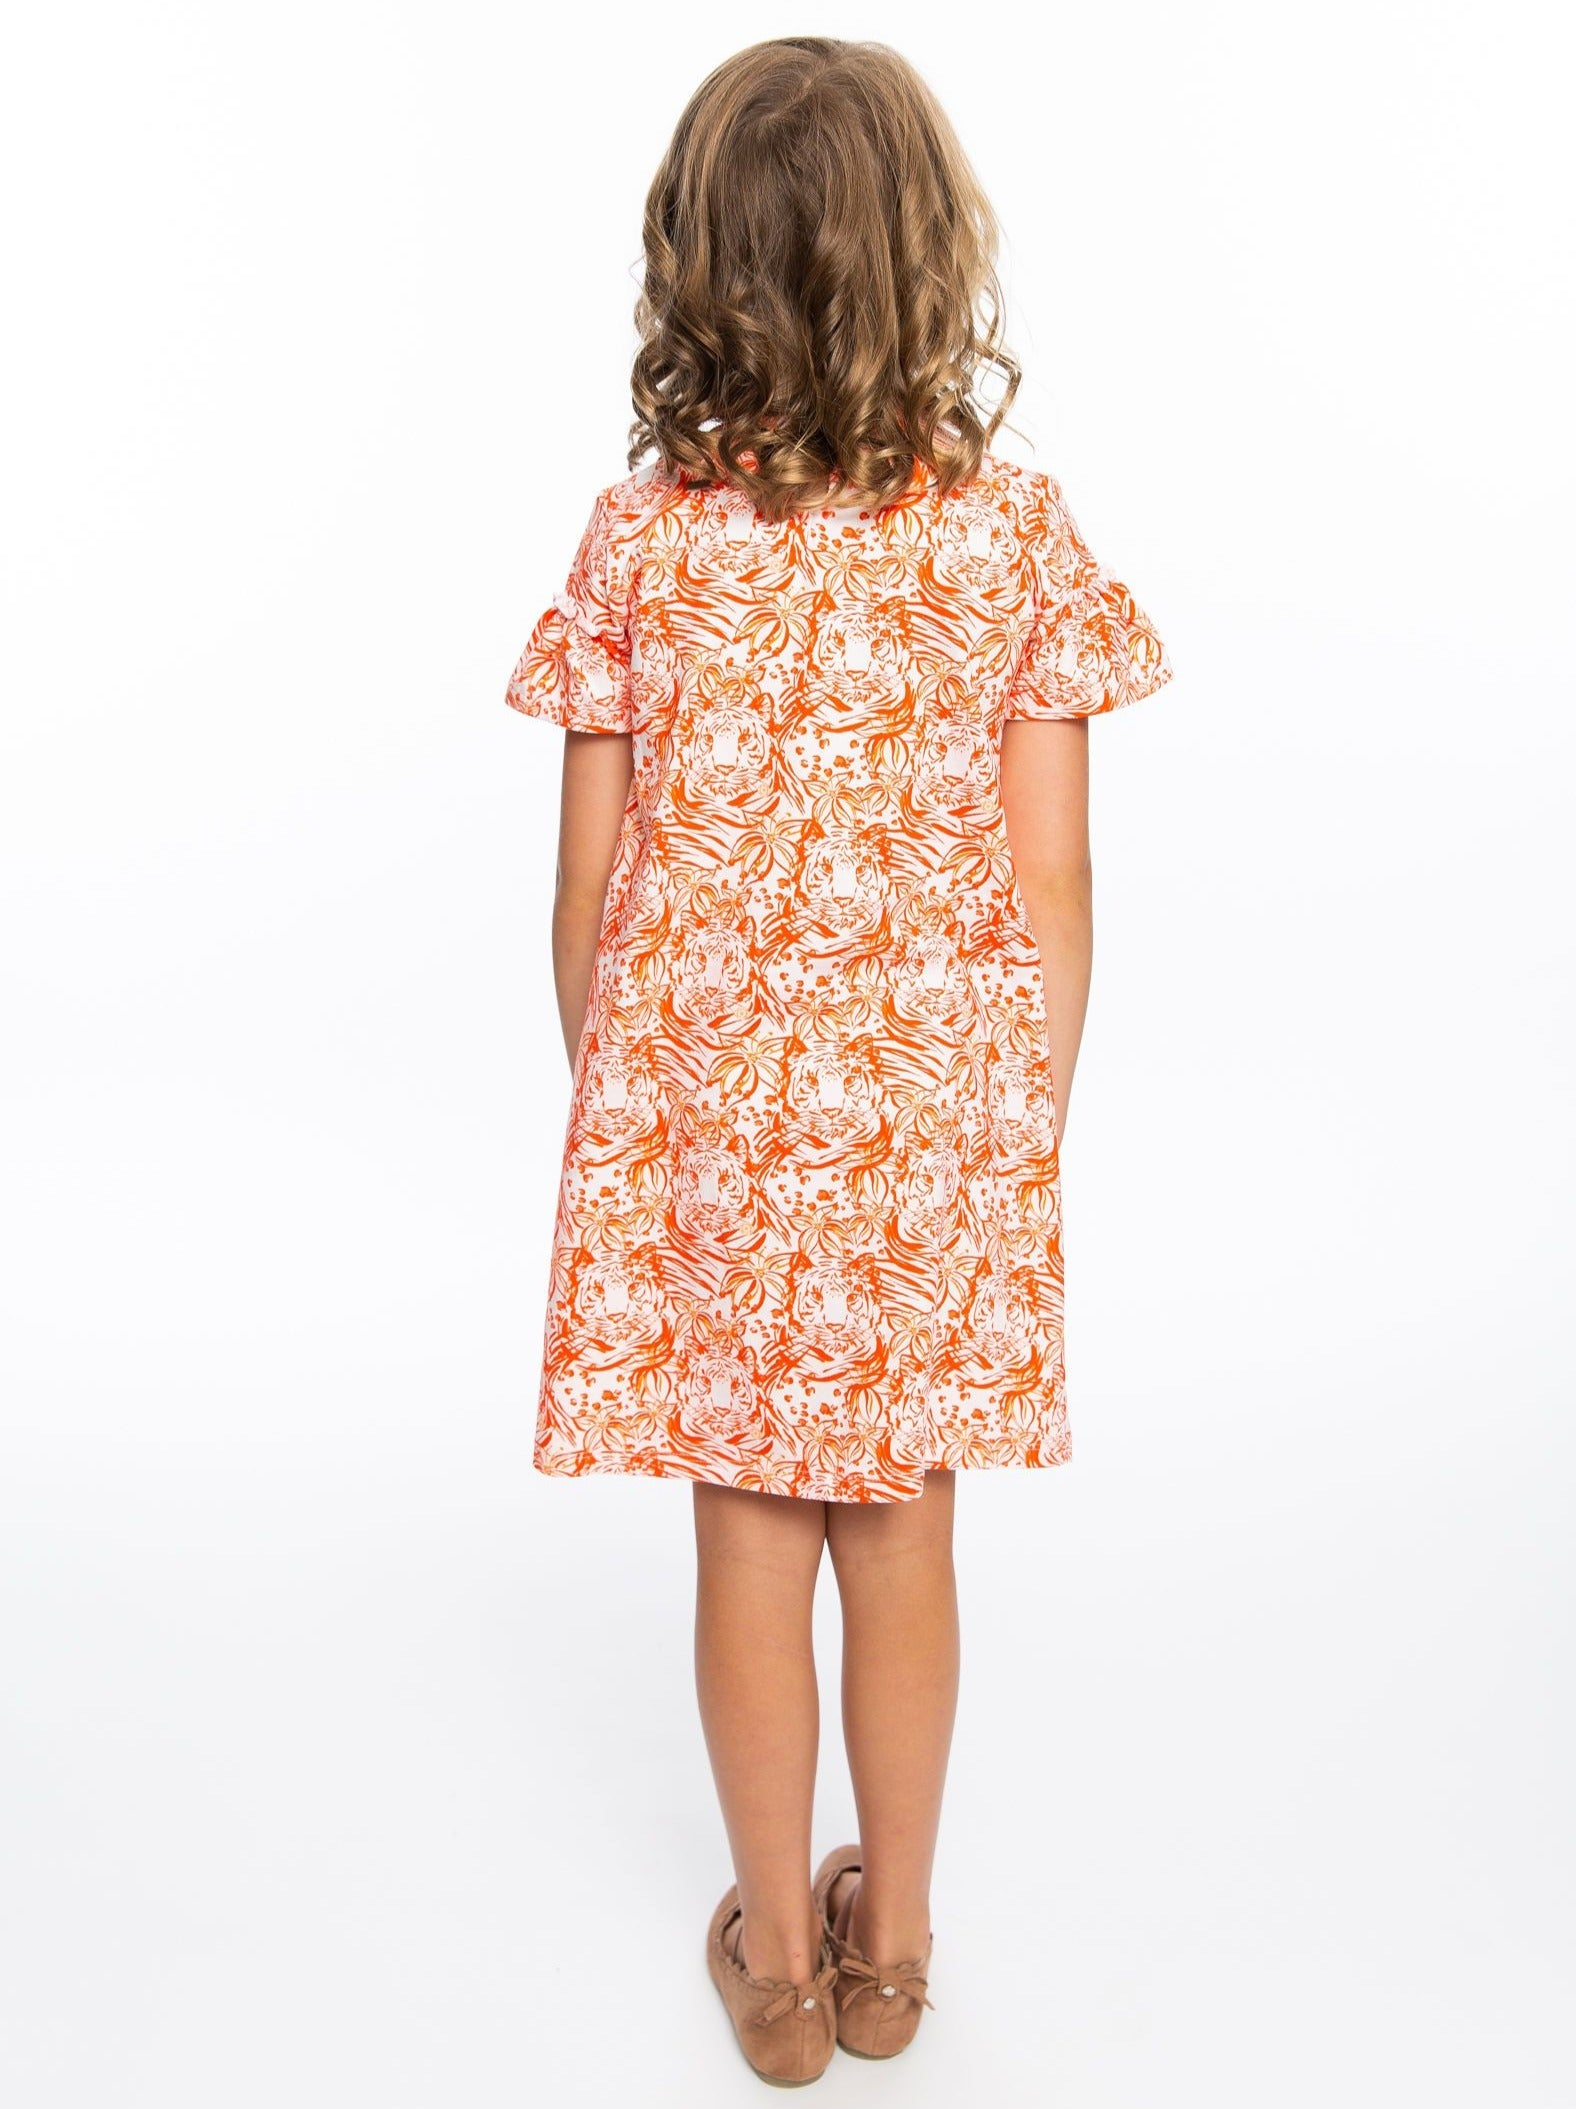 Girls Dress | Orange Tiger Print